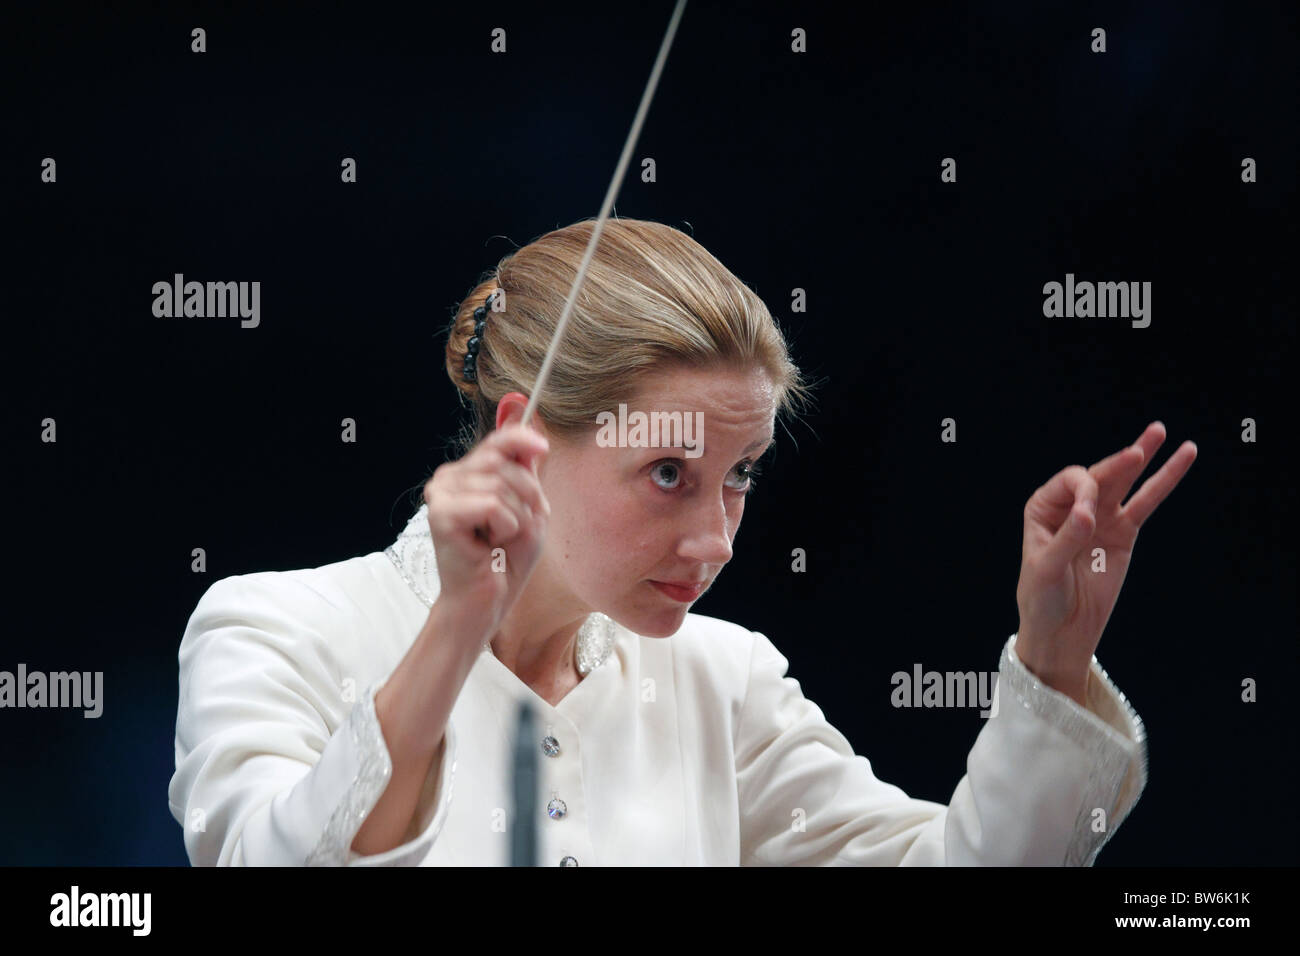 Joan Landry conducts the Boston Landmarks Orchestra at the Hatch Shell in Boston, Massachusetts - Stock Image